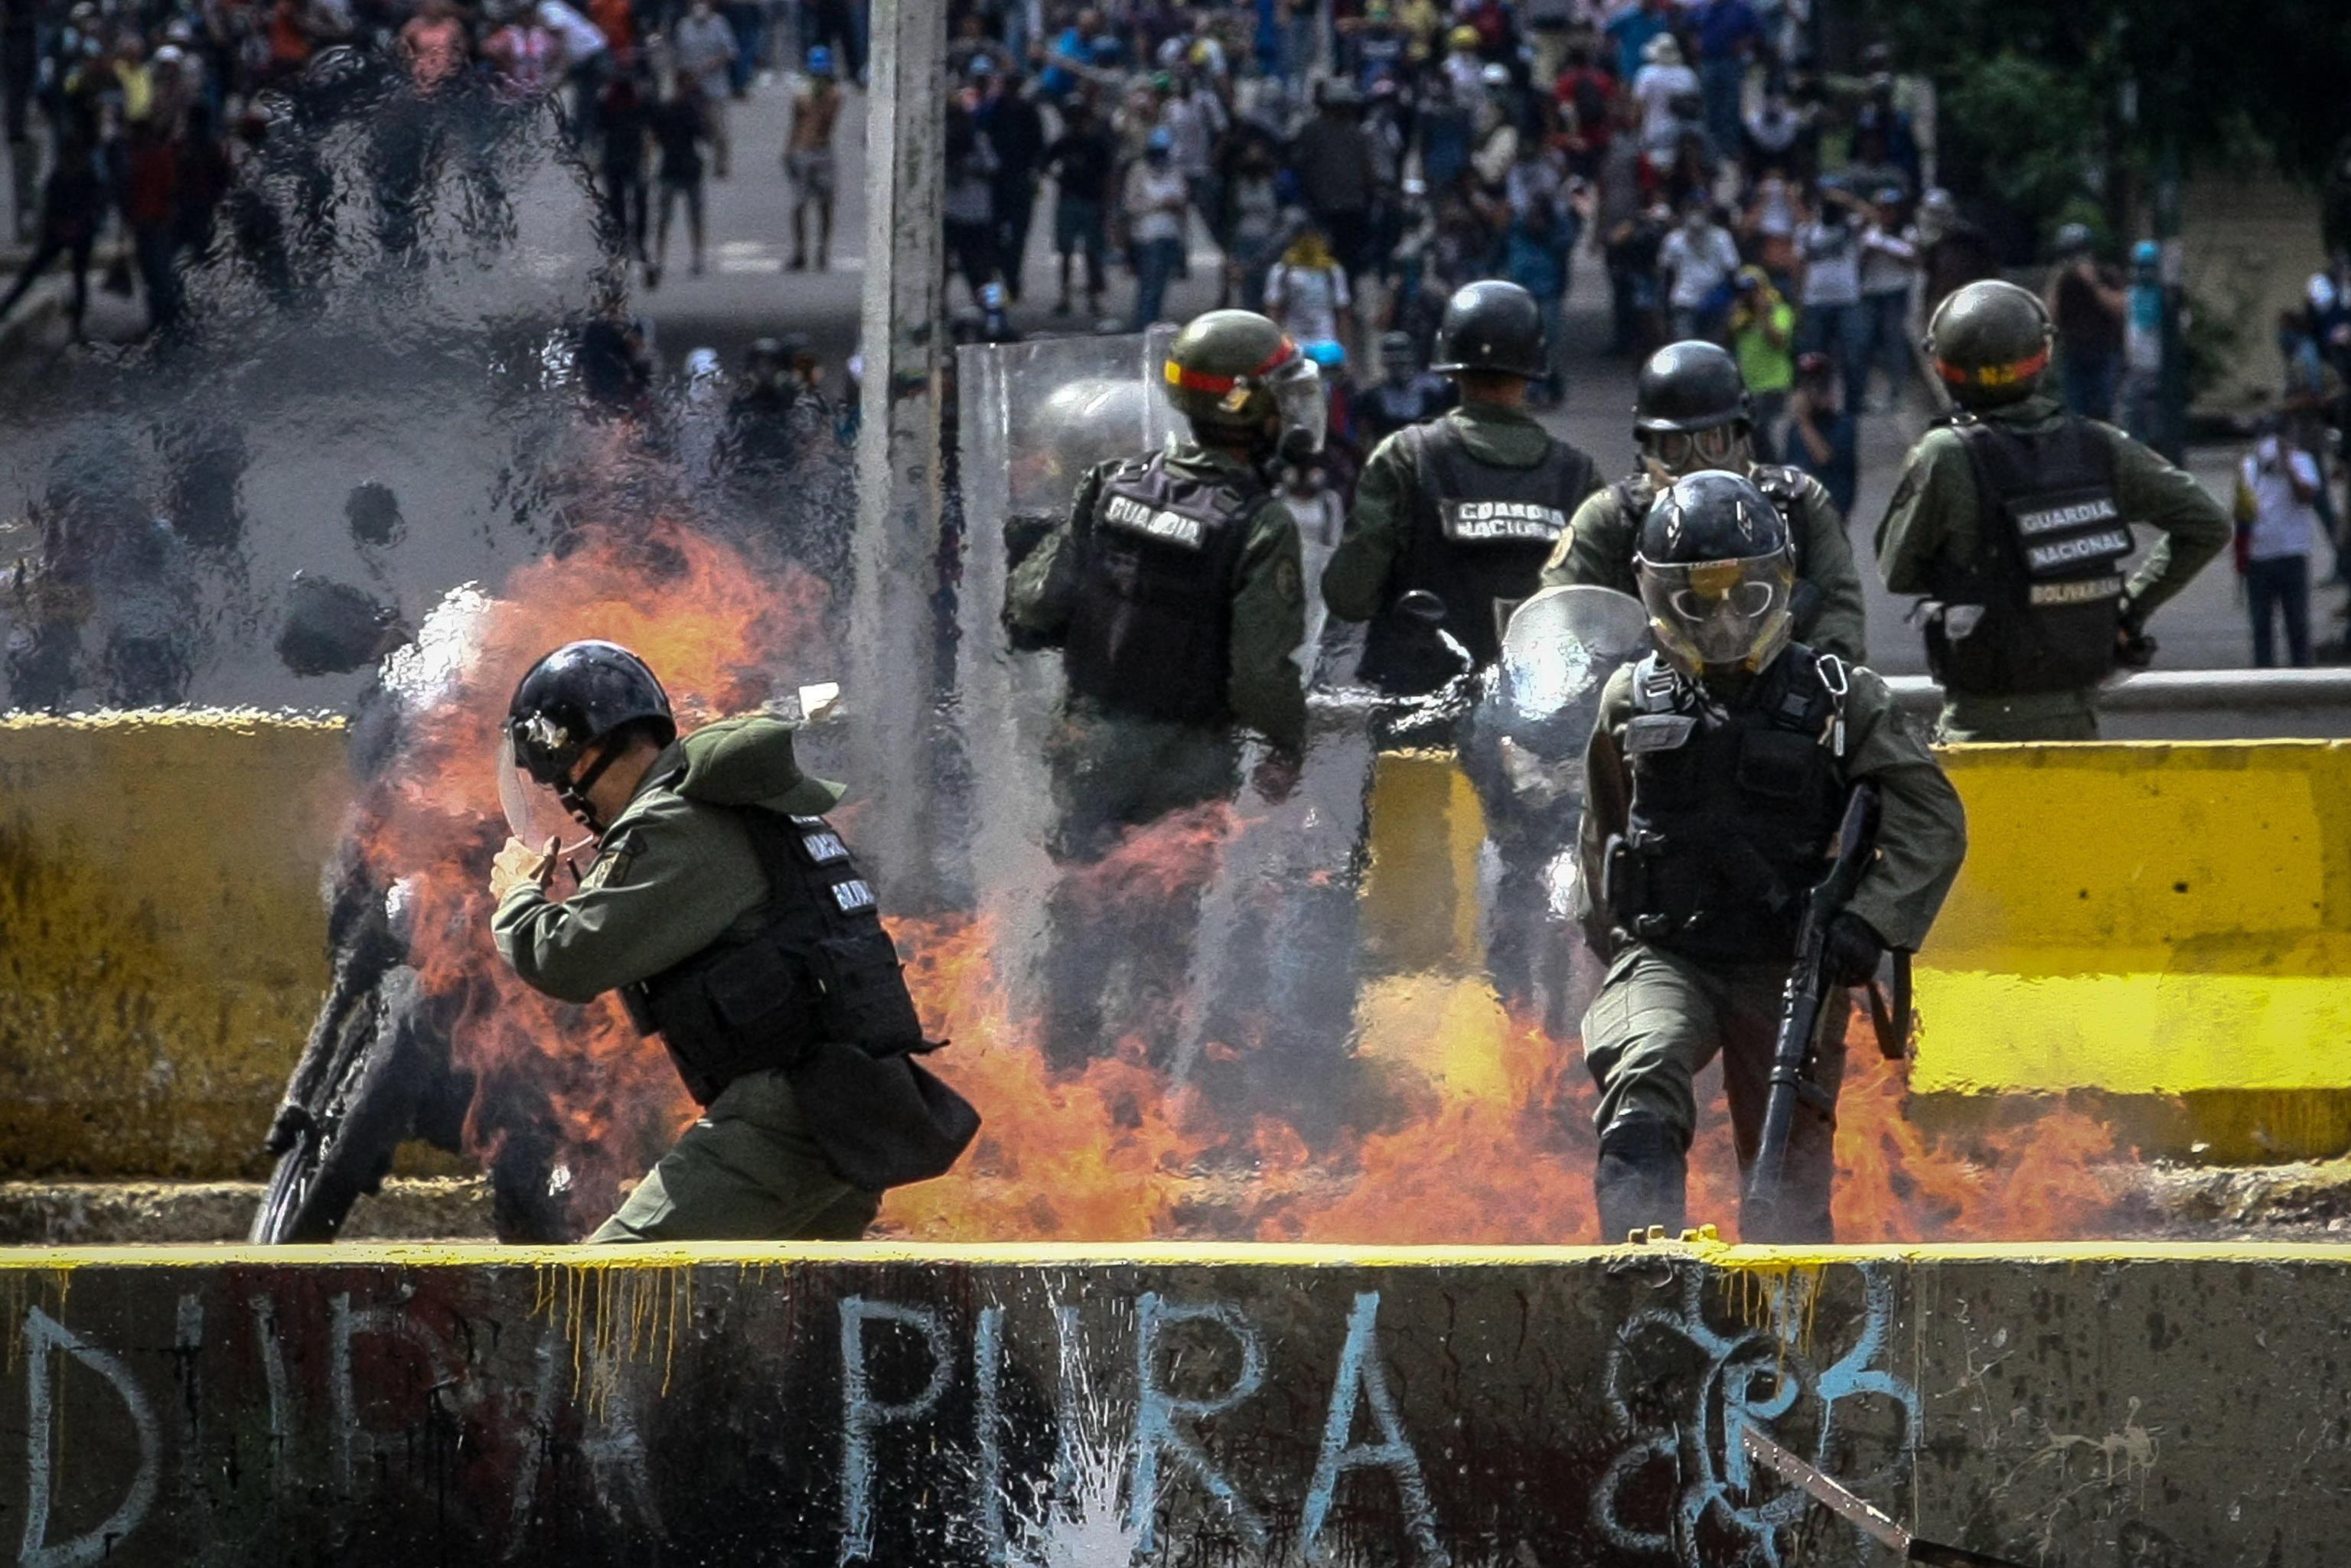 March against the Constituent Assembly in Caracas